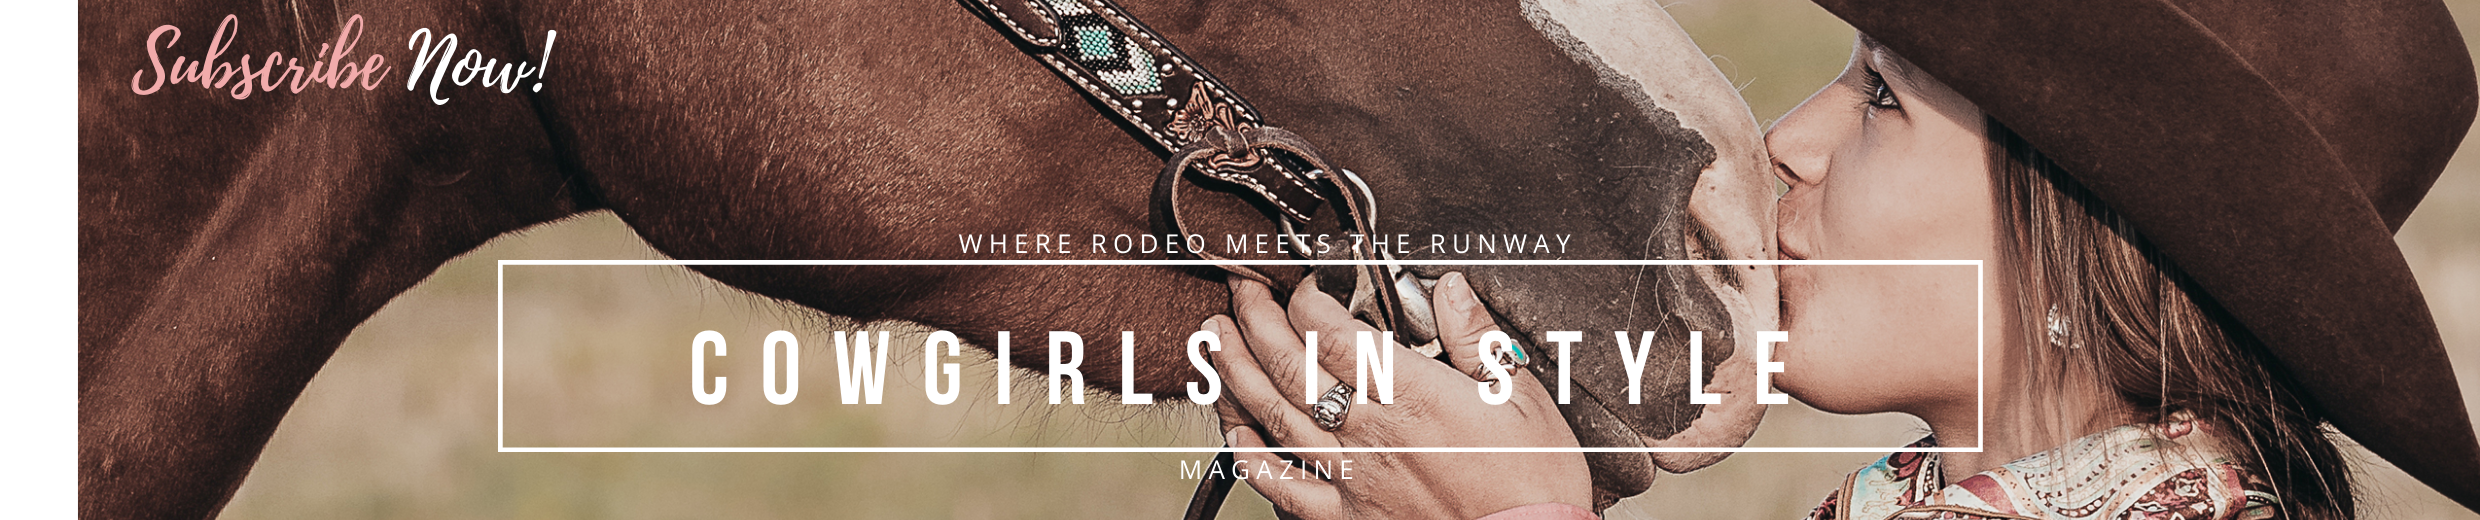 Cowgirl Boss Archives - Cowgirls In Style Magazine